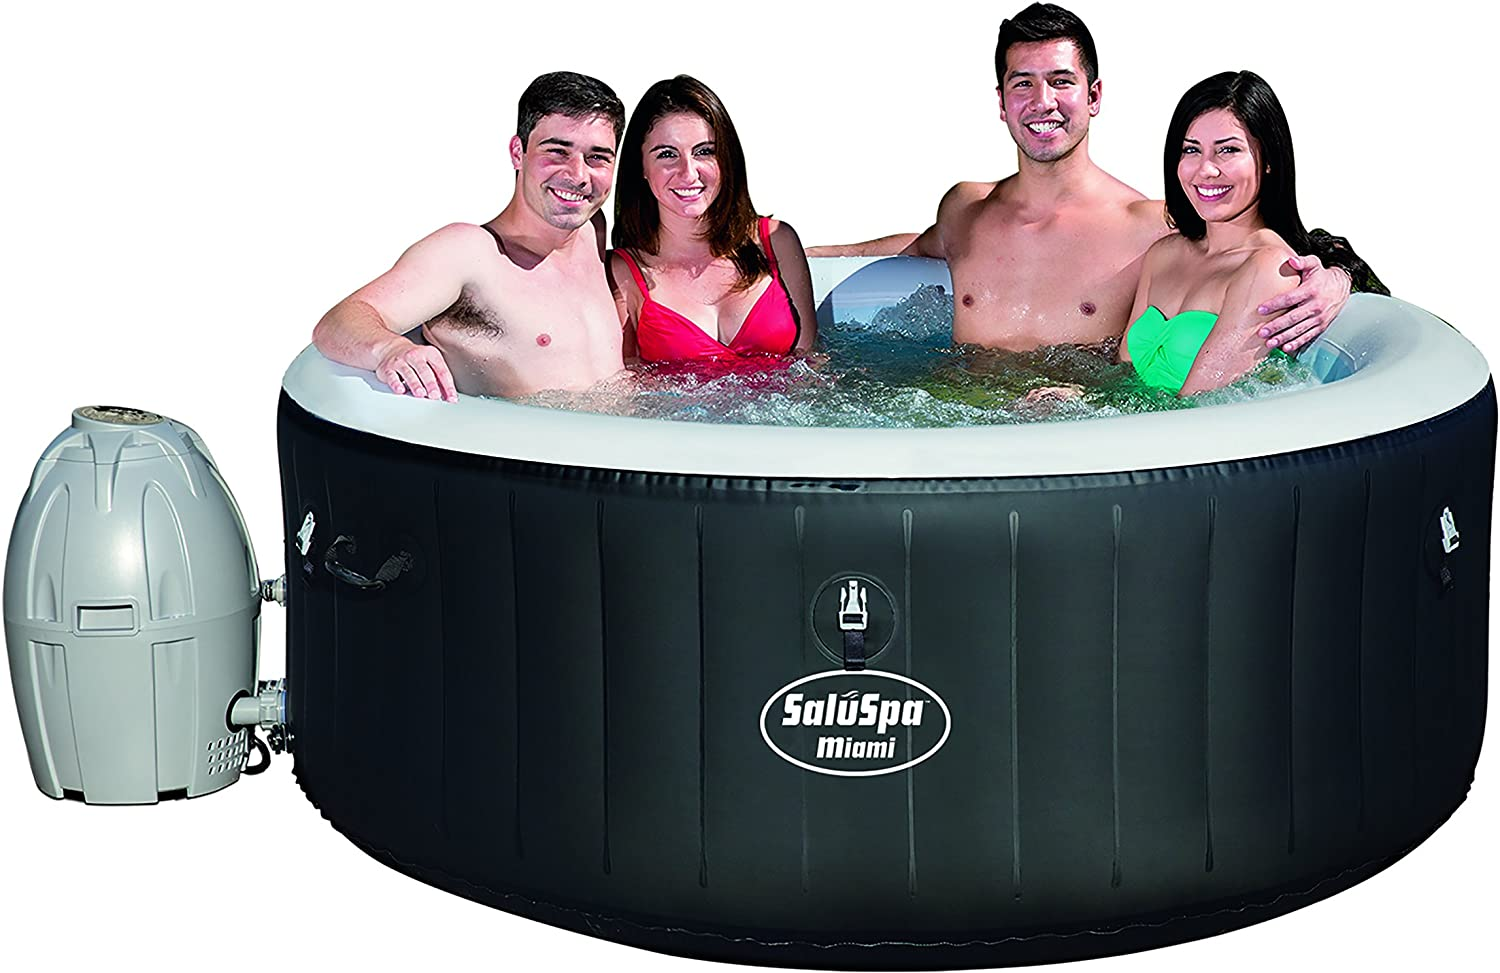 Bestway SaluSpa Miami Inflatable Hot Tub, 4-Person AirJet Spa, 54124